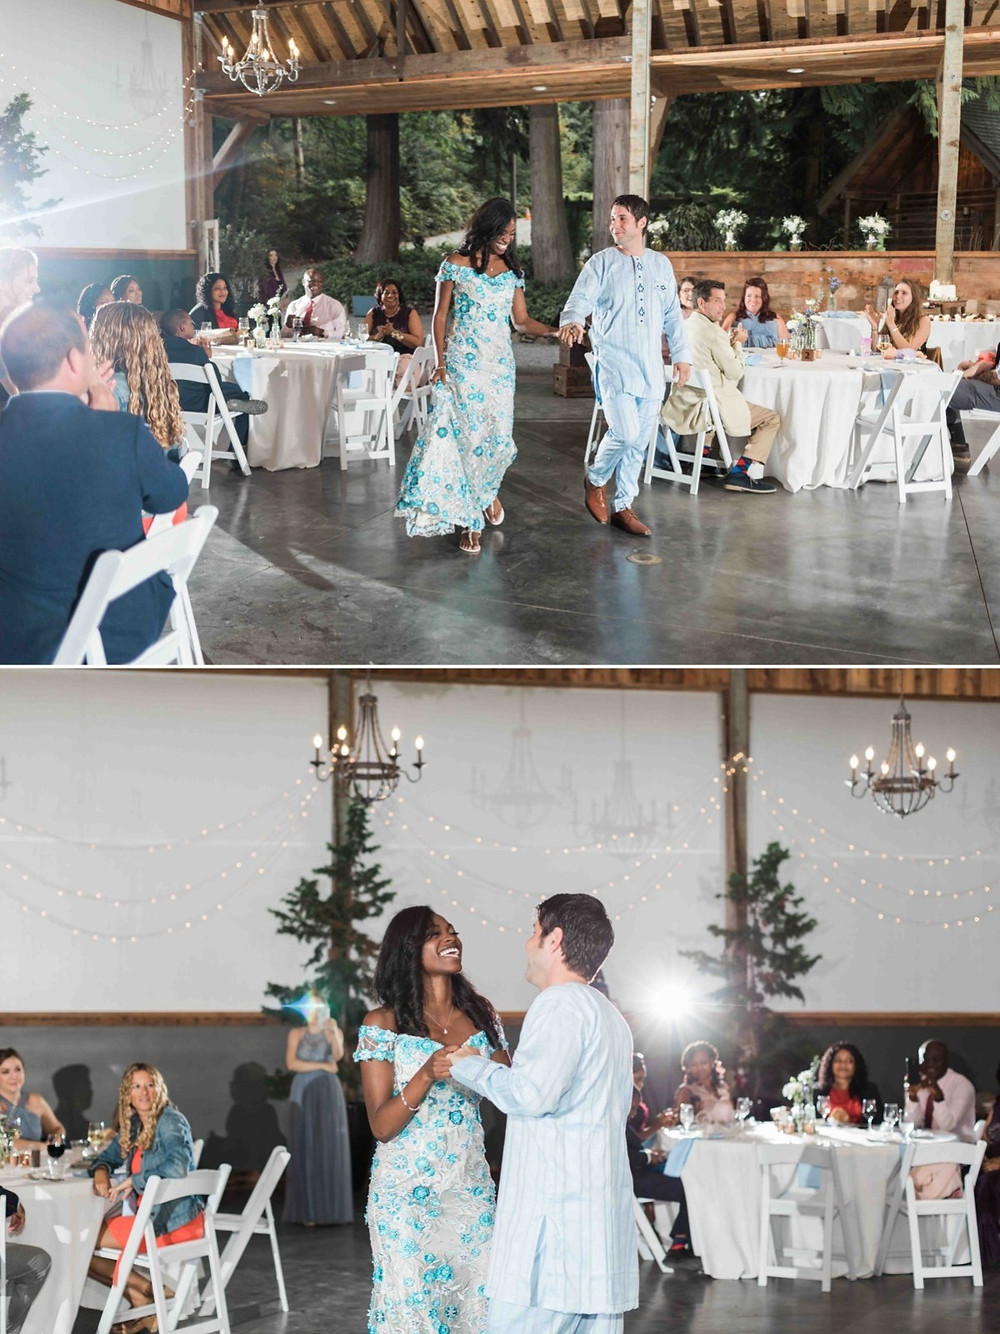 Photos of a bride and groom during their first dance at their wedding reception at Green Gates at Flowing Lake, a wedding venue in Snohomish near Seattle, WA. | My Snohomish Wedding | Snohomish Wedding Planning